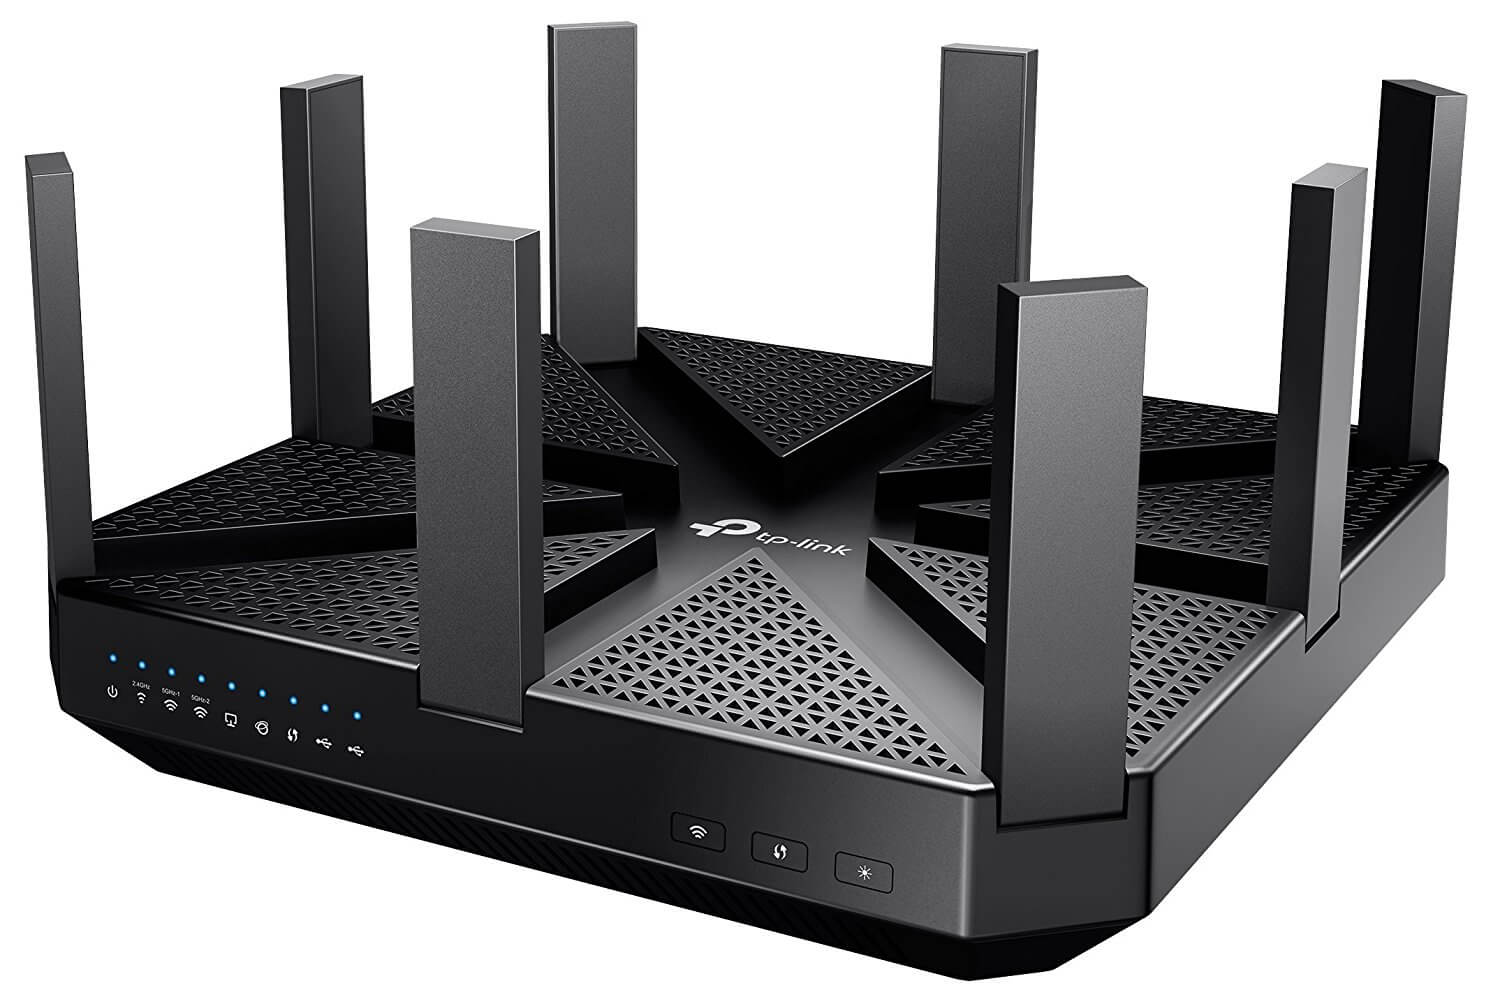 TP-Link Archer C5400 AC5400 Wireless Tri-Band MU-MIMO Gigabit Router Black